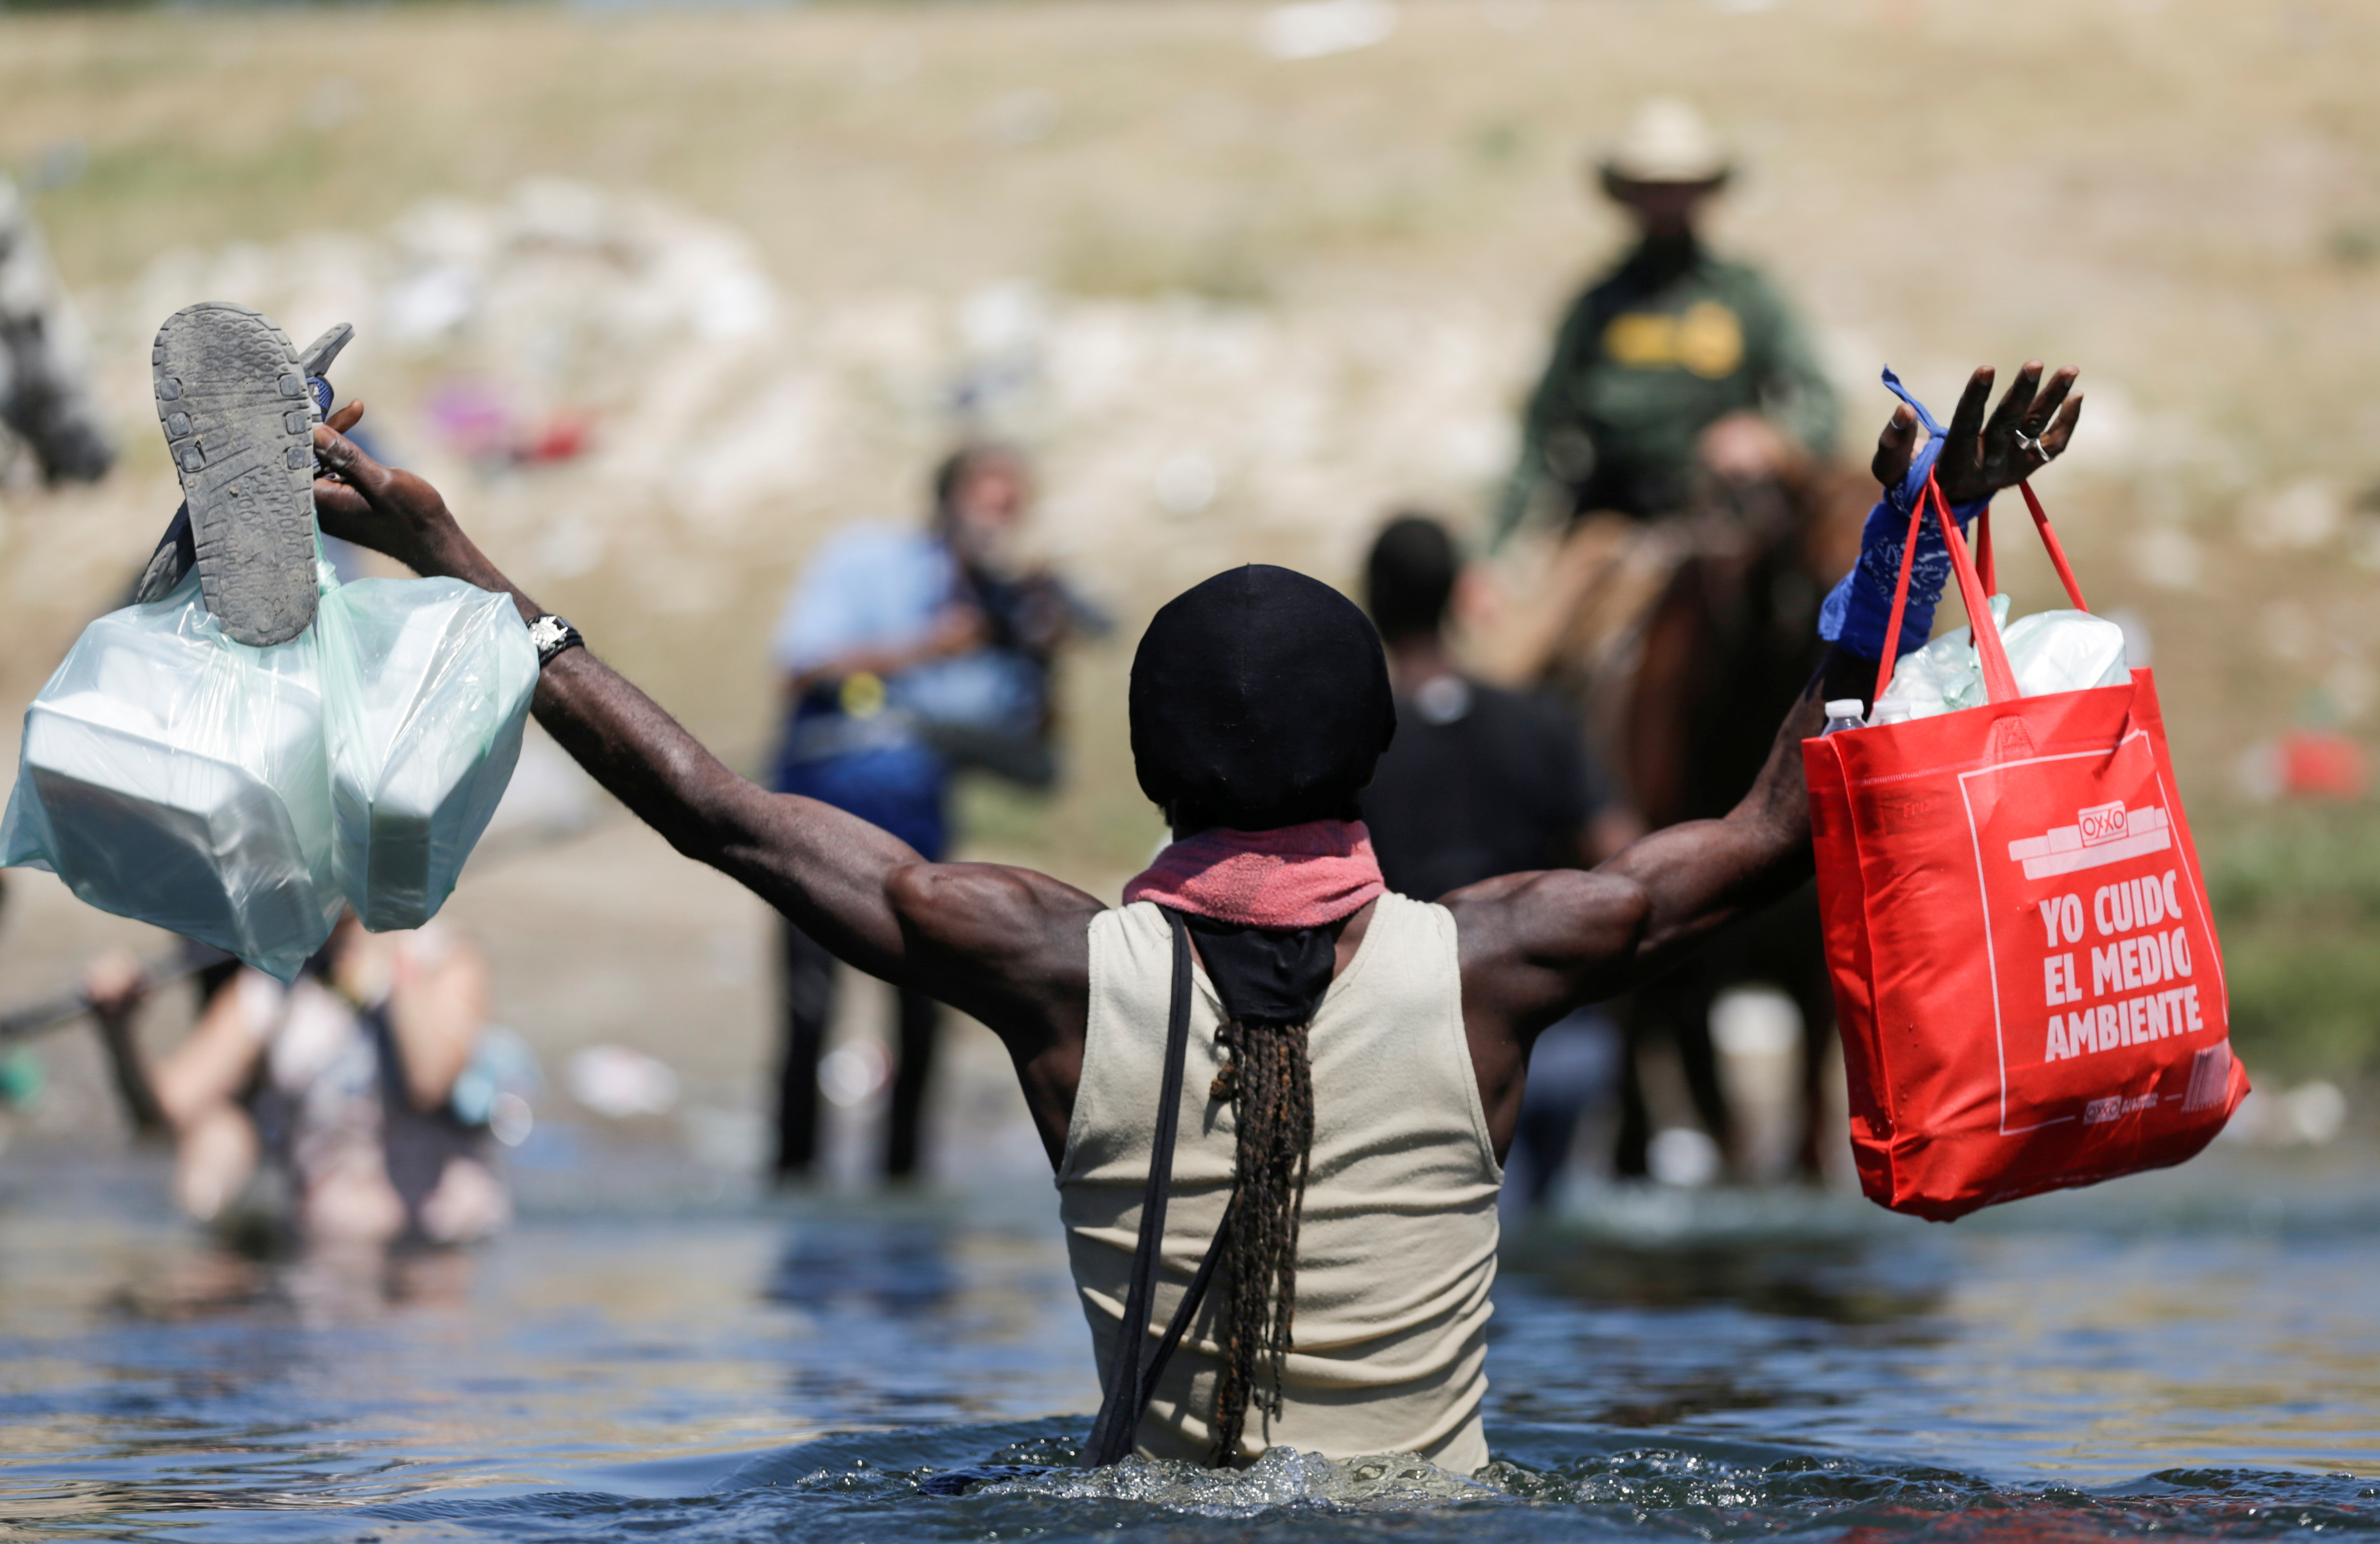 A migrant man asylum seeker walks through the Rio Grande river to cross the border between Ciudad Acuna, Mexico and Del Rio, Texas, U.S., after buying supplies at the Mexican side, in Ciudad Acuna, Mexico September 19, 2021. REUTERS/Daniel Becerril